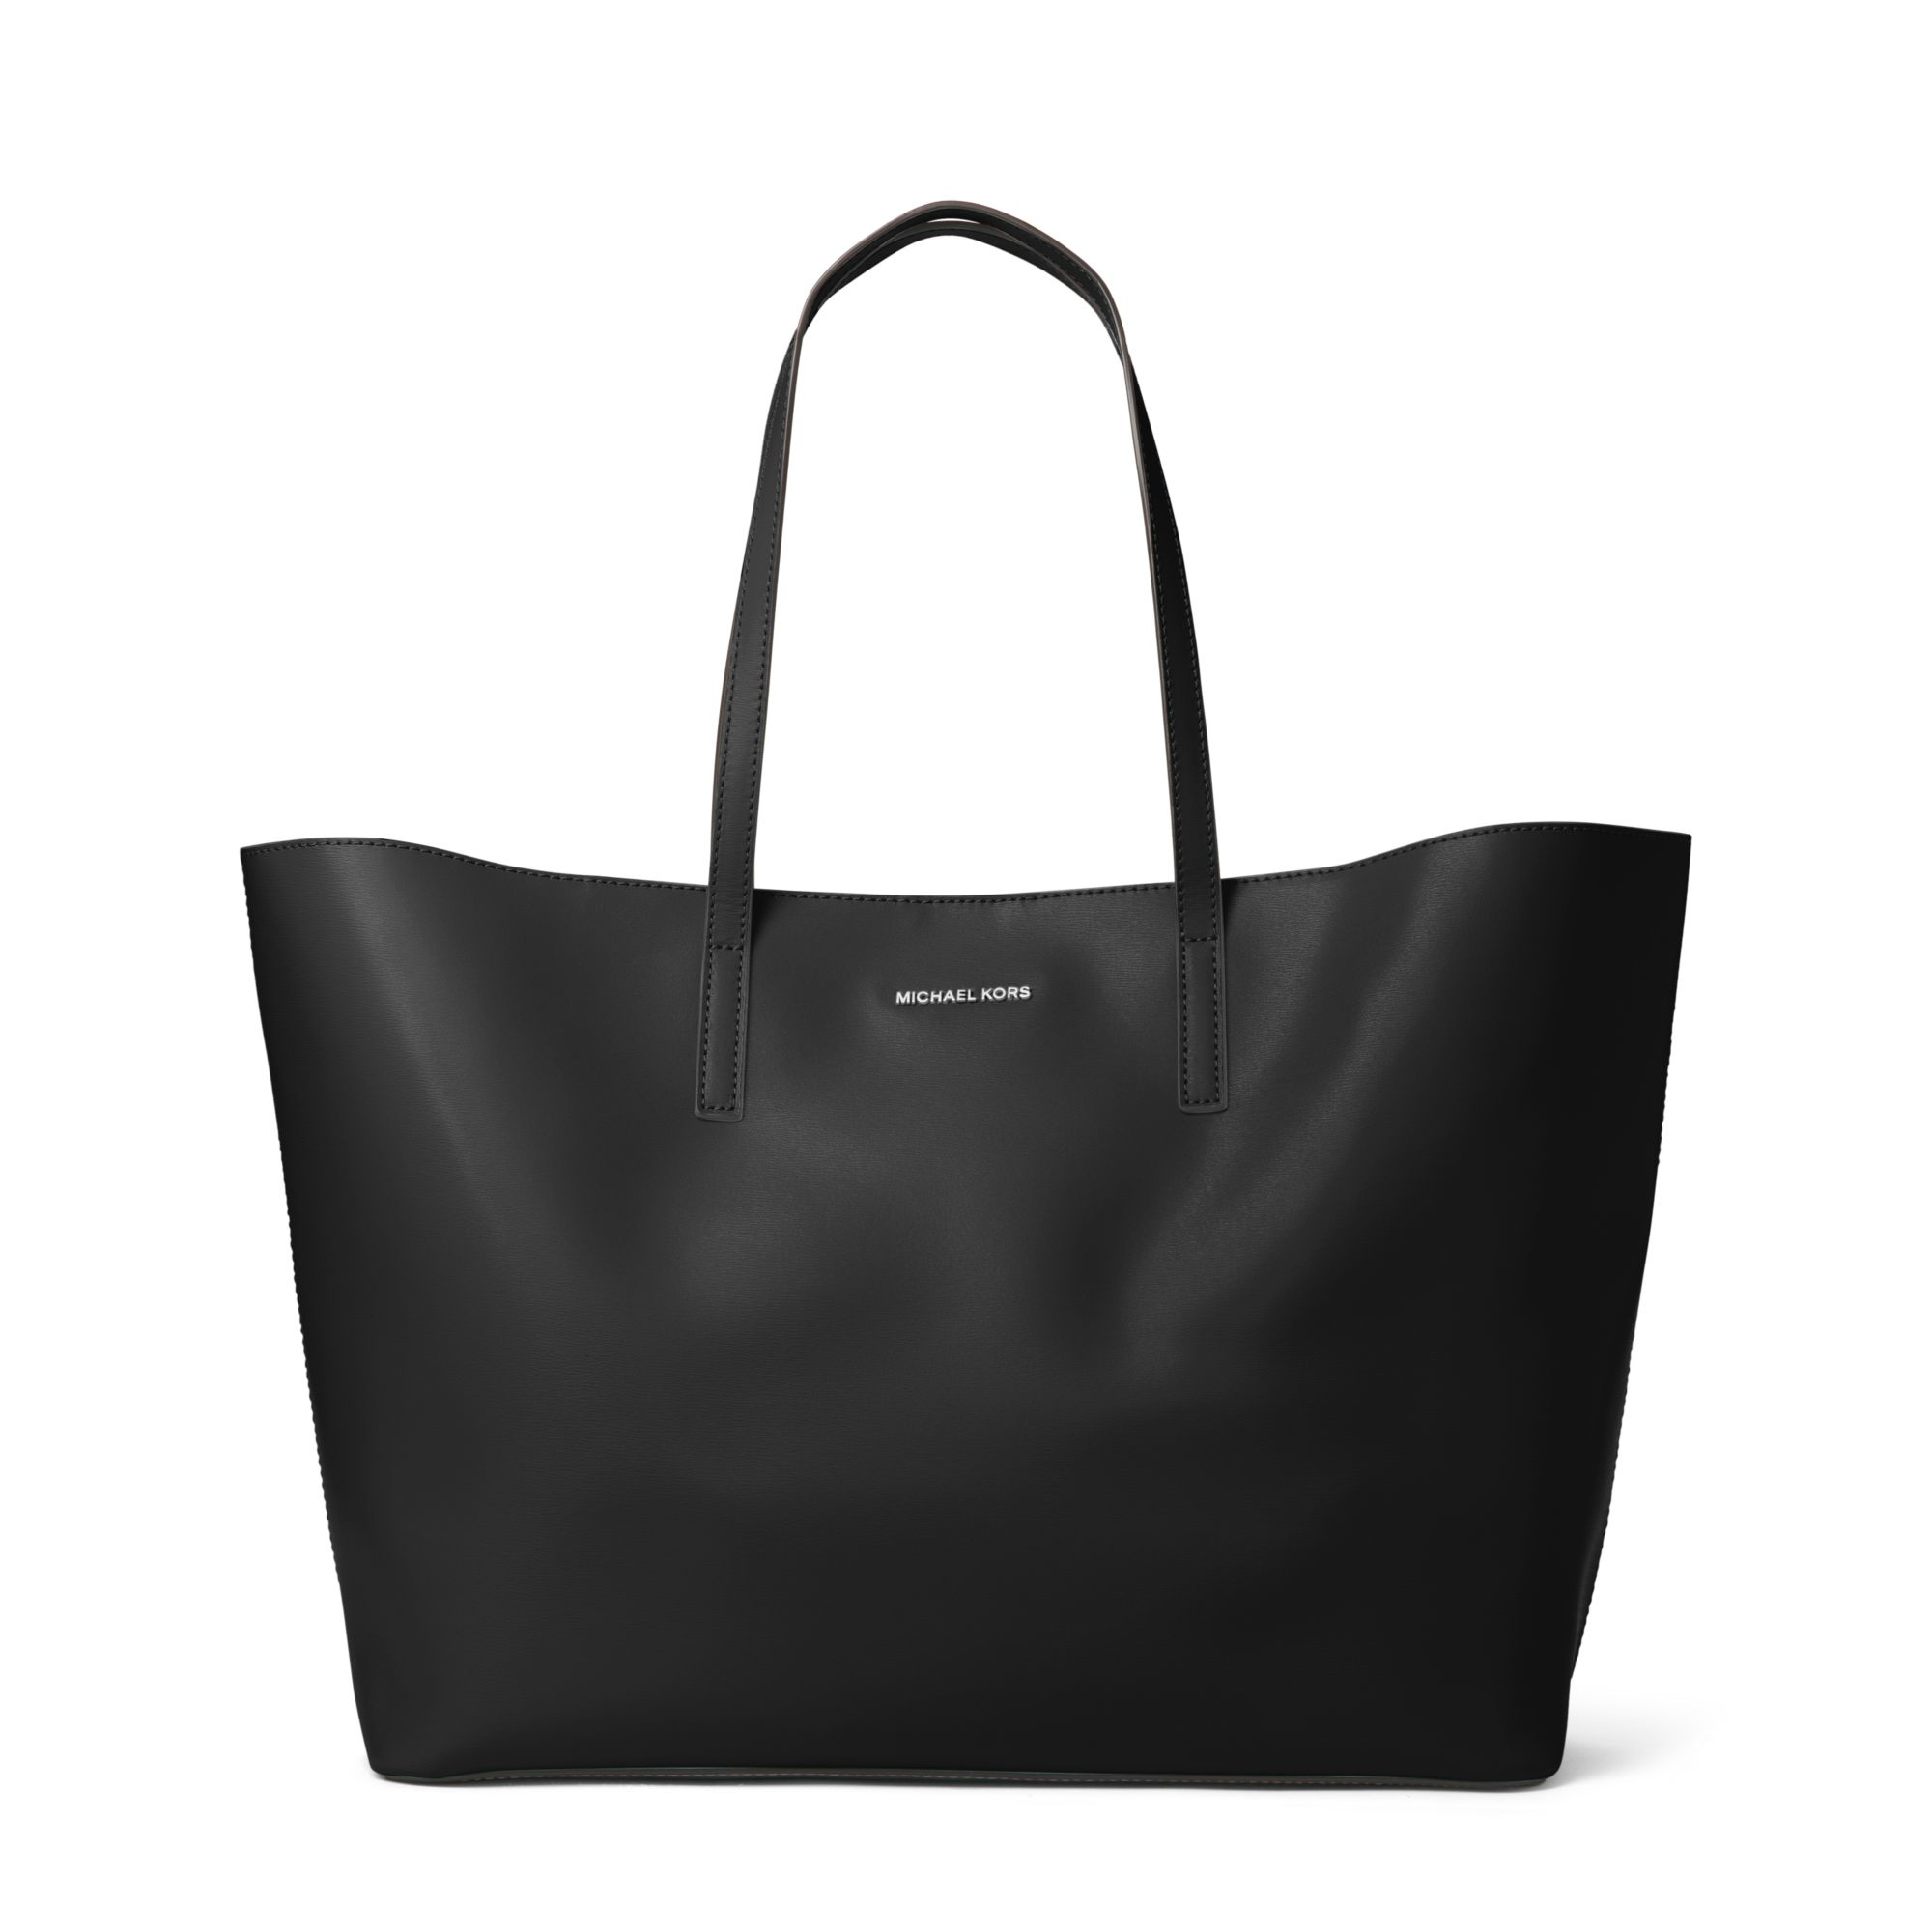 73d5fd665e4f12 Michael Kors Emry Extra-Large Leather Tote in Black - Lyst